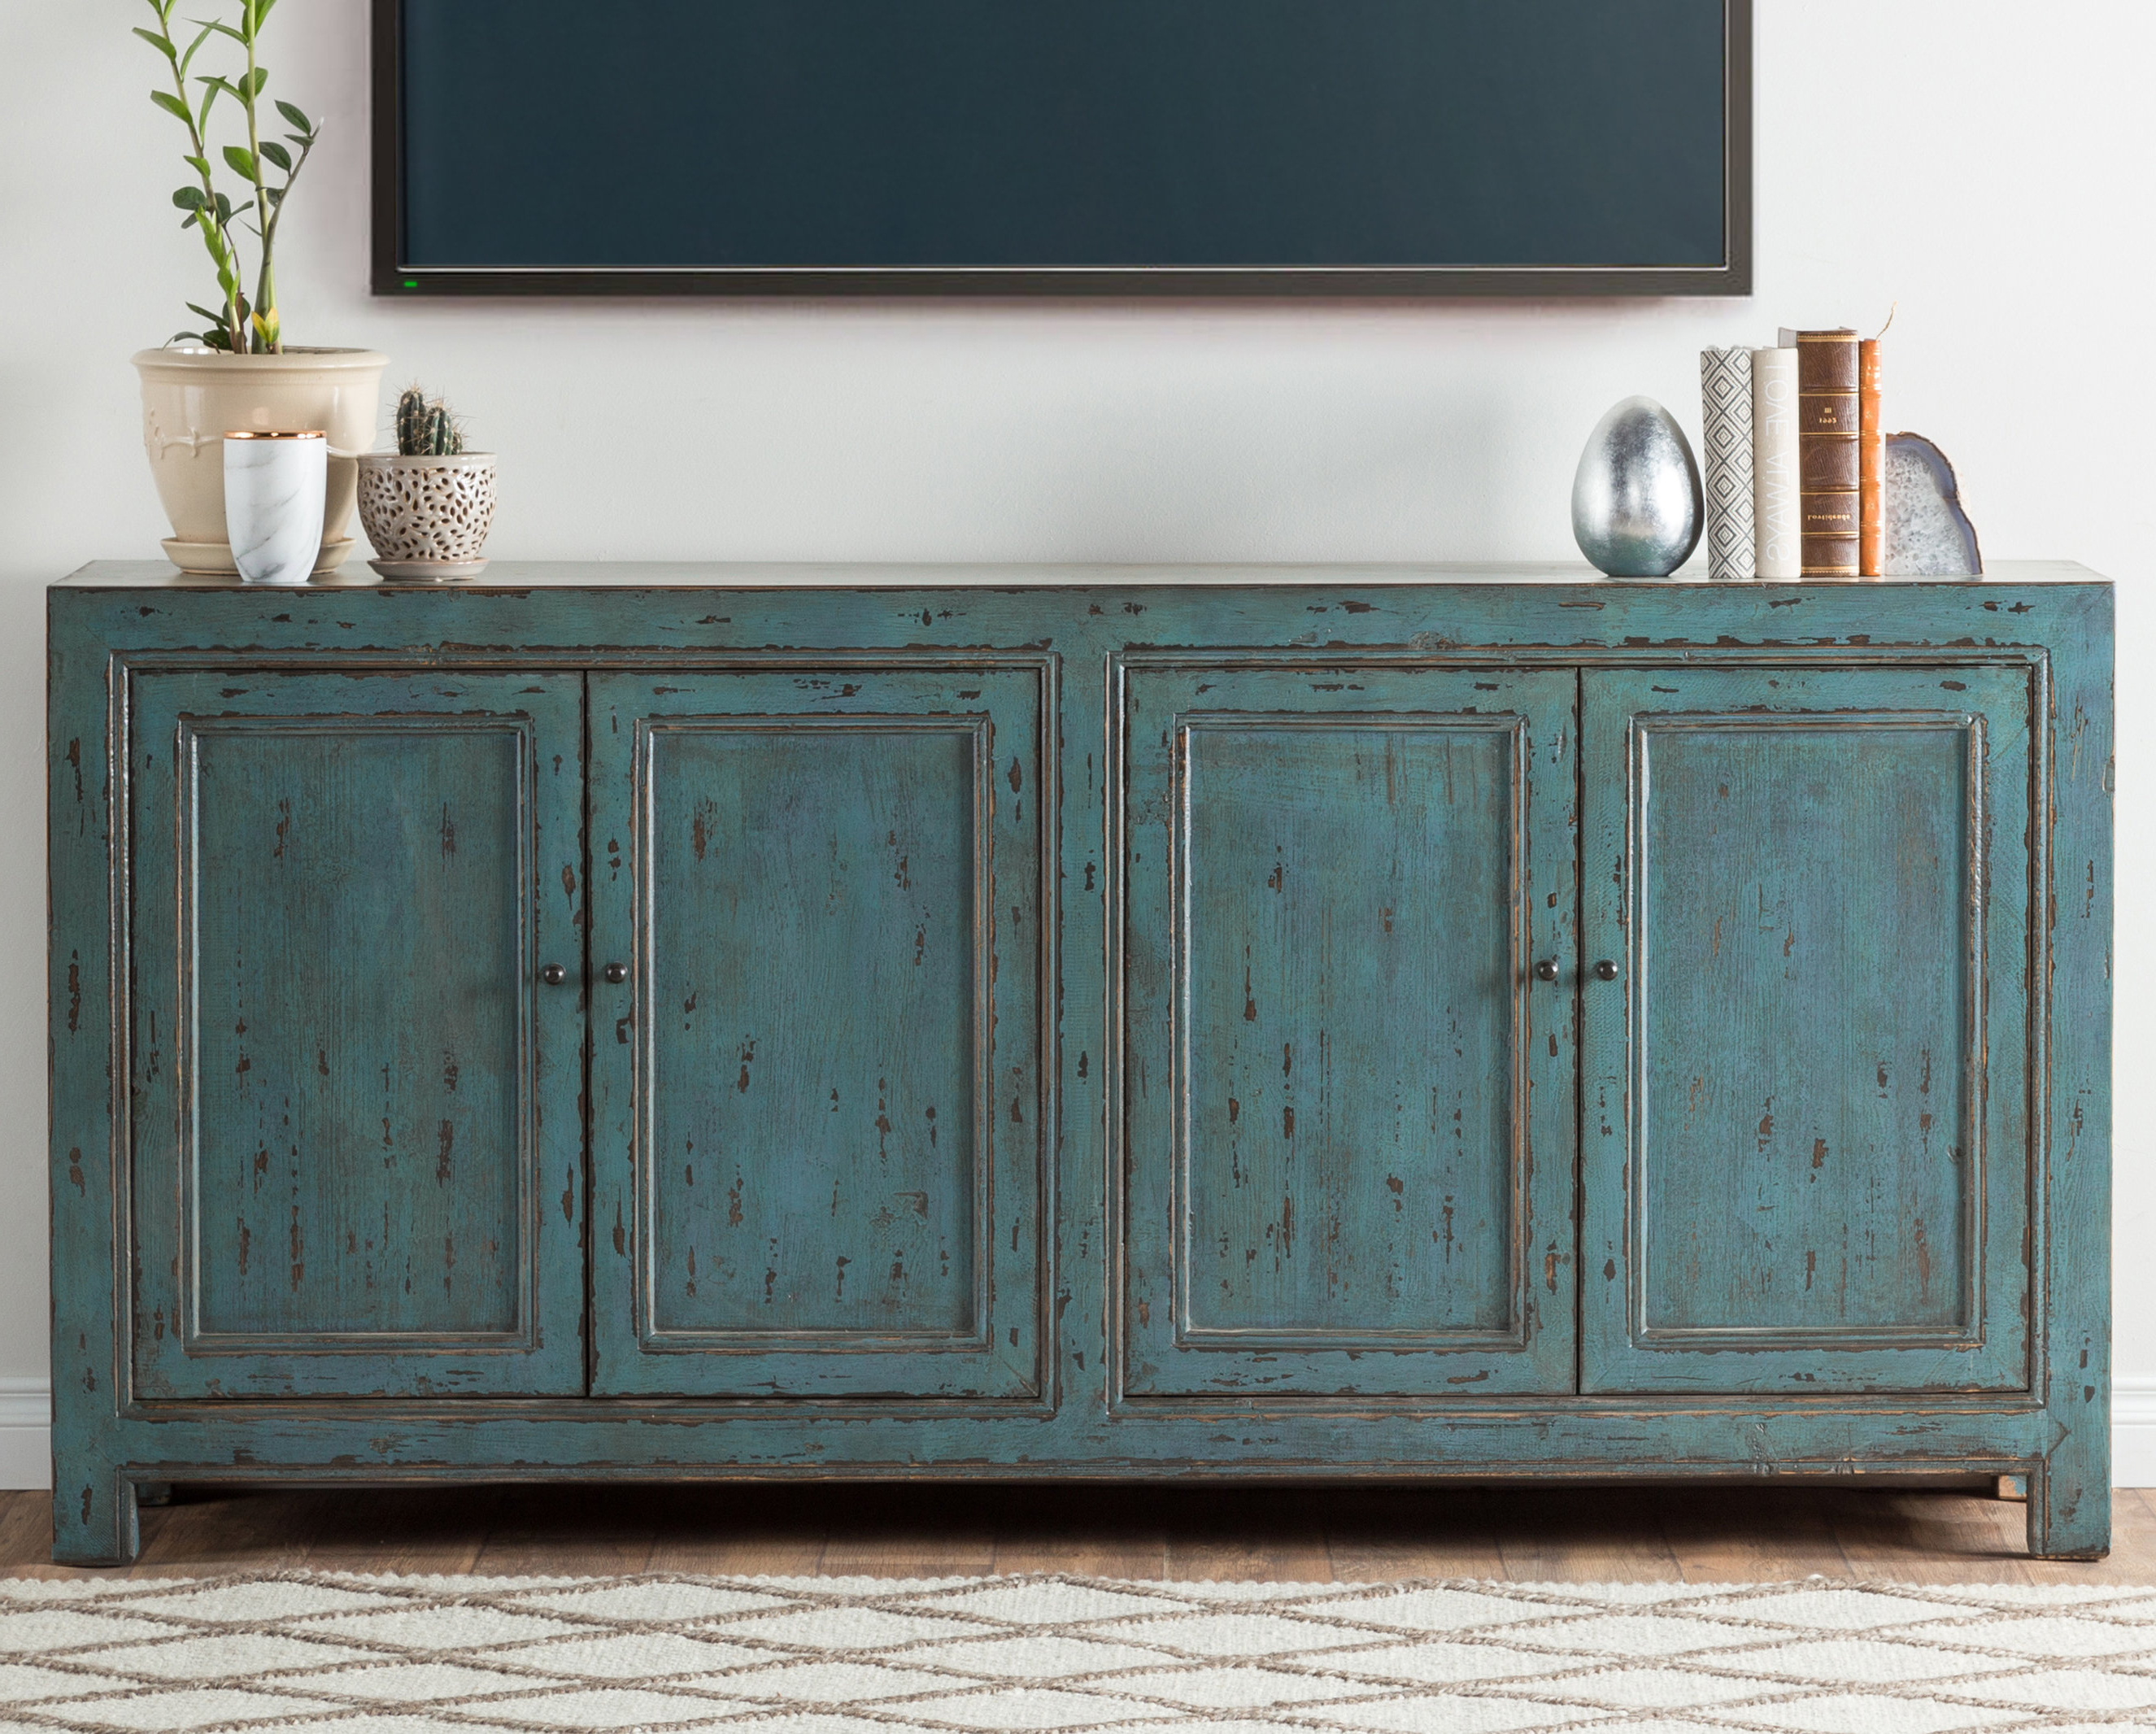 Widely Used Reclaimed Pine 4 Door Sideboards Within August Grove Tapscott Reclaimed Pine 4 Door Sideboard & Reviews (View 2 of 20)